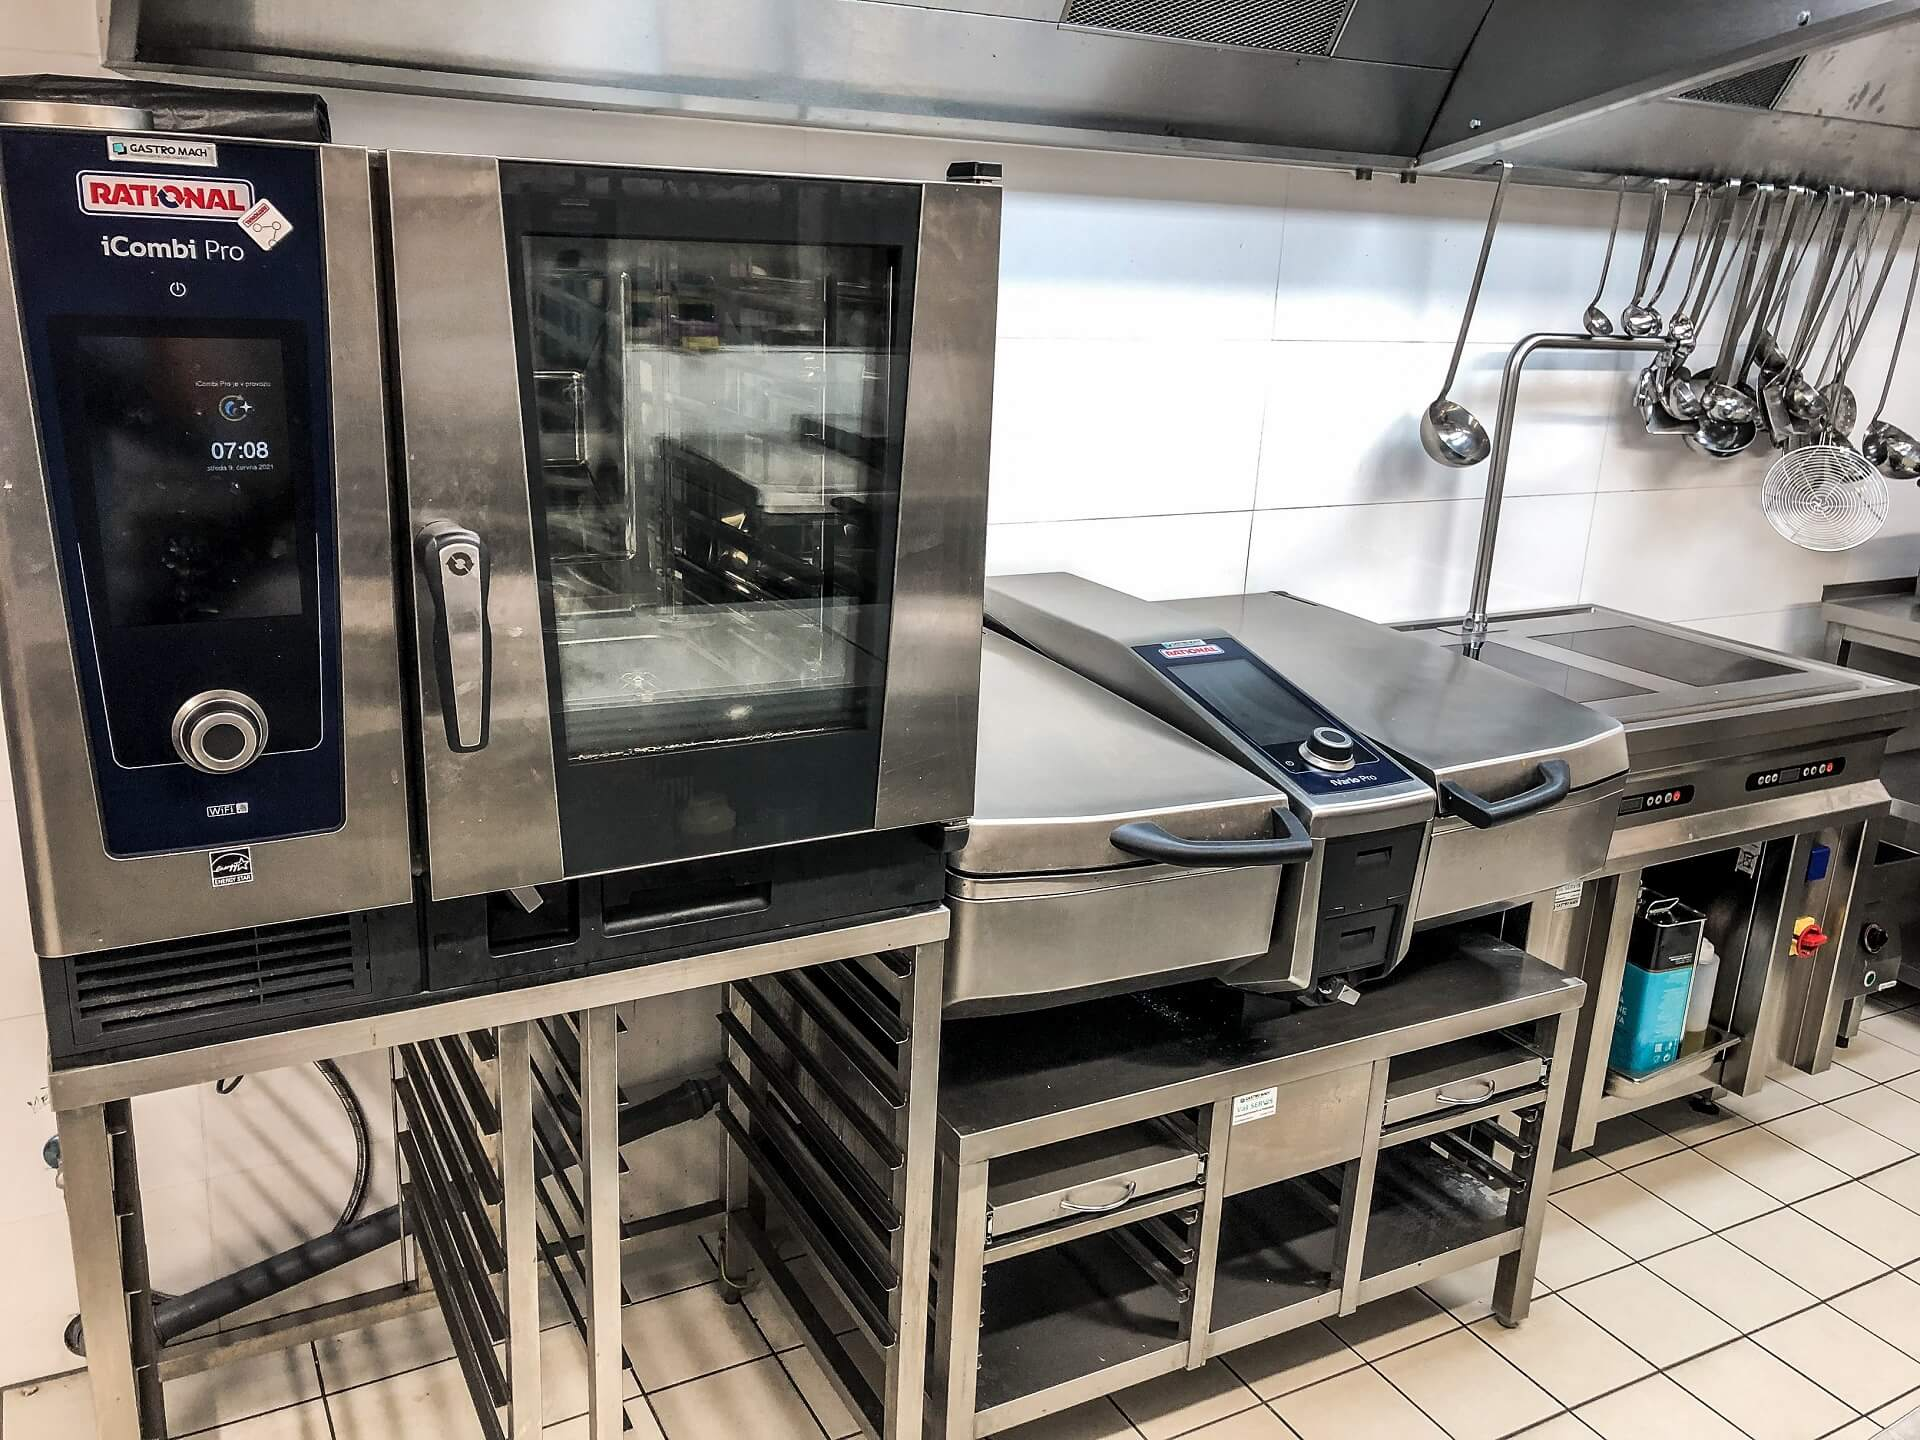 Which appliances are best to equip my kitchen with? connected cooking